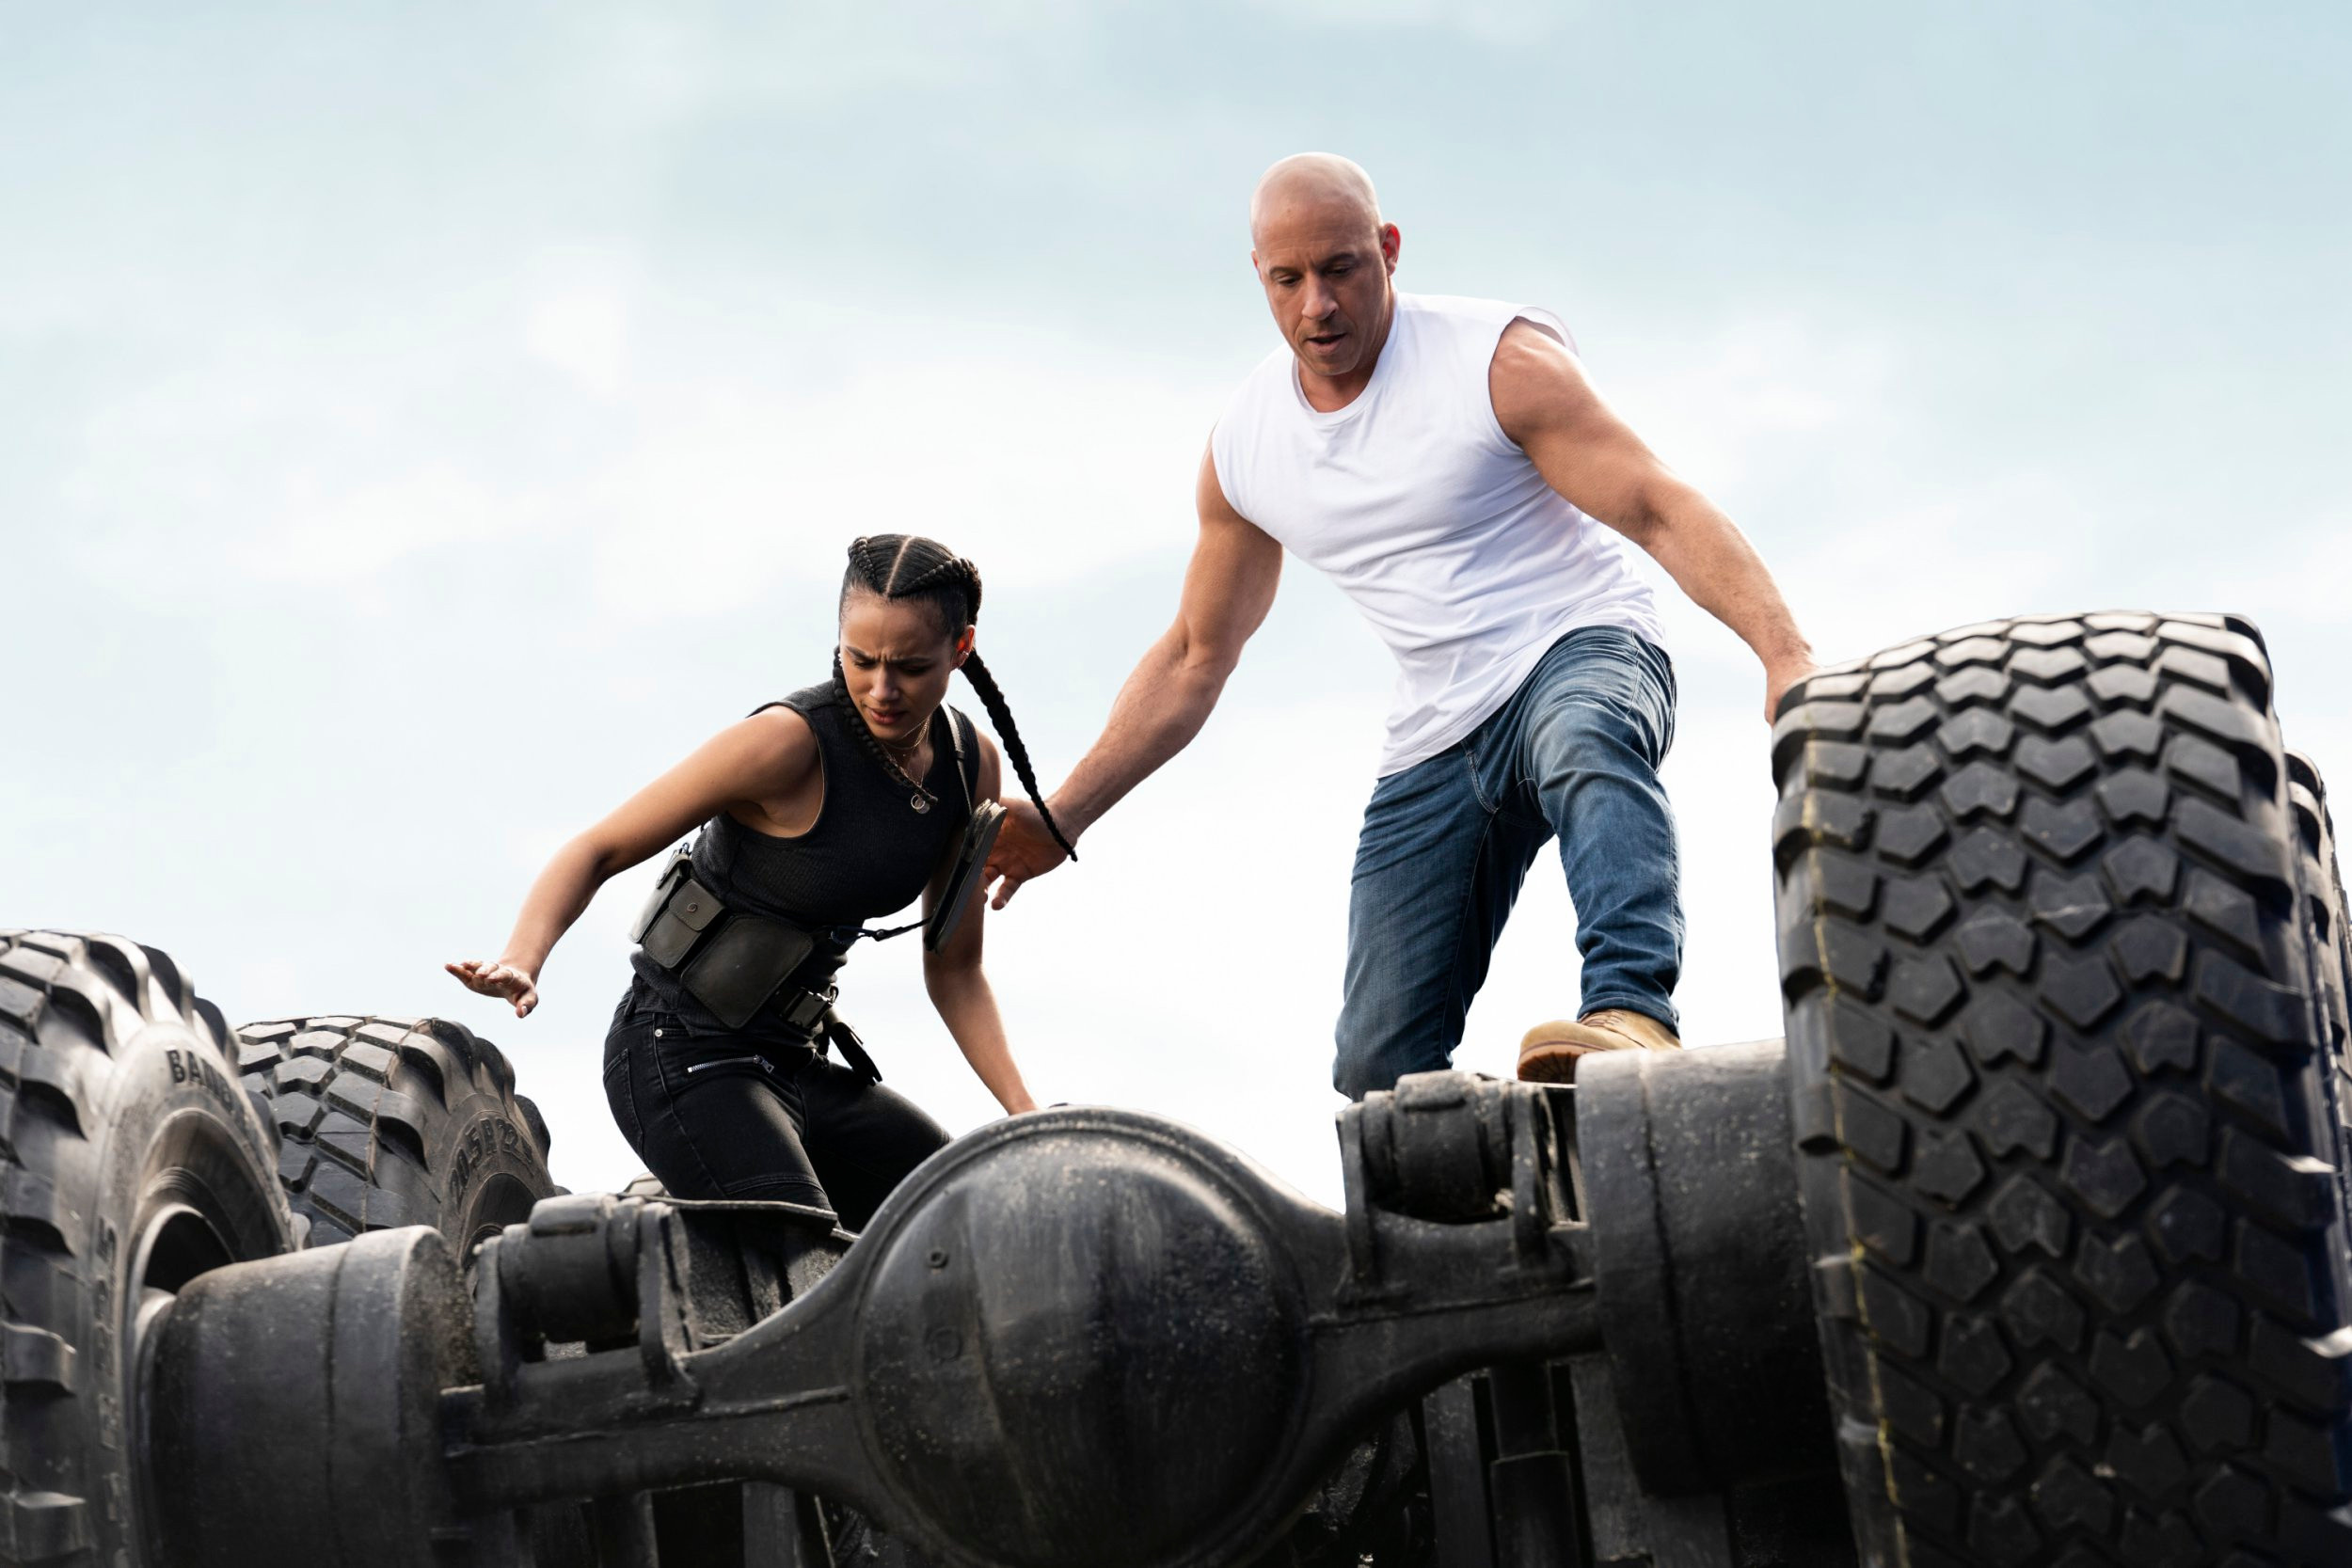 Vin Diesel teases 'emotional' Fast and Furious 10 and our seatbelts are fastened: 'The excitement is real'